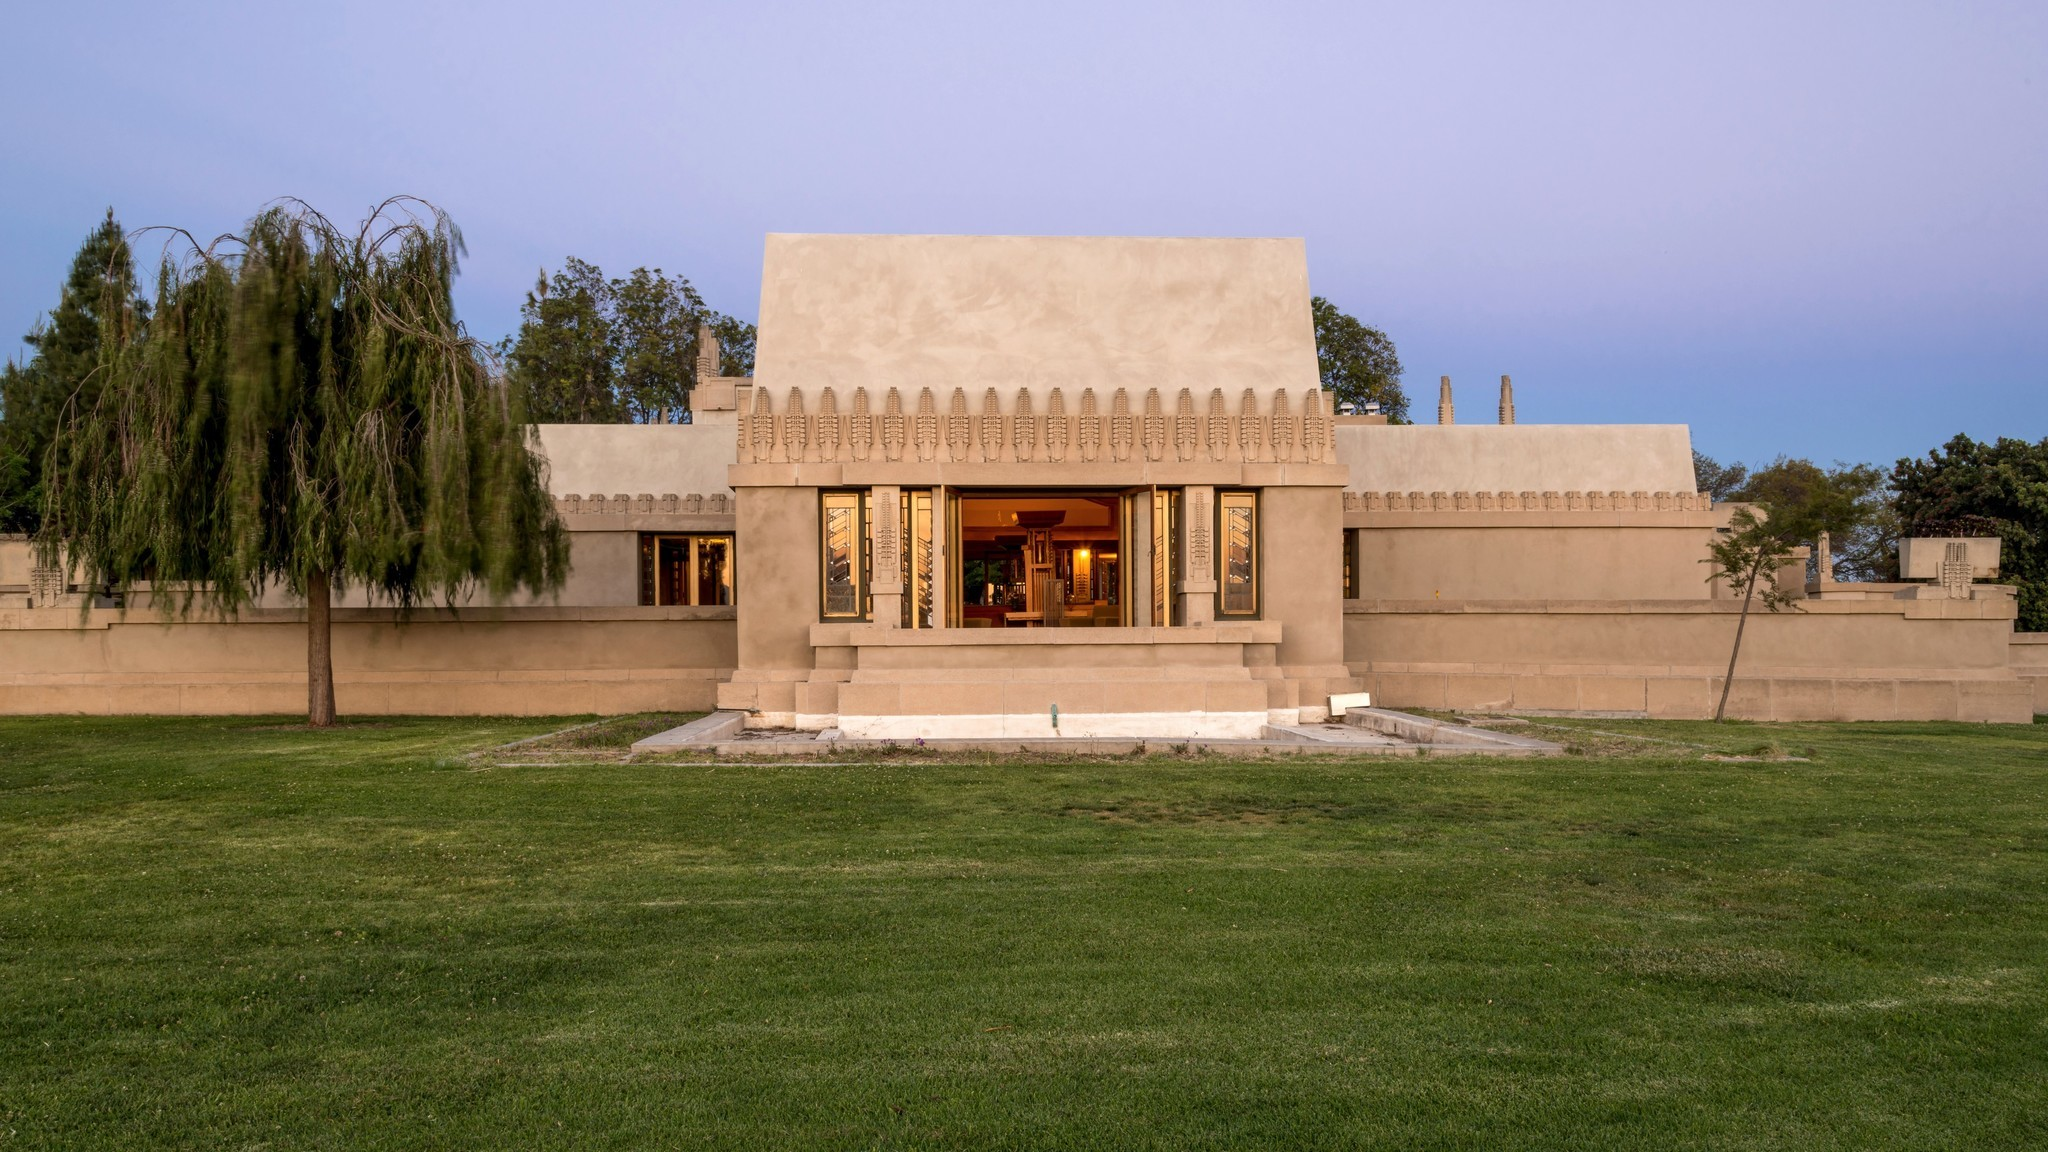 Hollyhock House, Wright's first work in Los Angeles, is now part of Barnsdall Art Park. Tours are offered as part of Friday night wine tastings this summer.